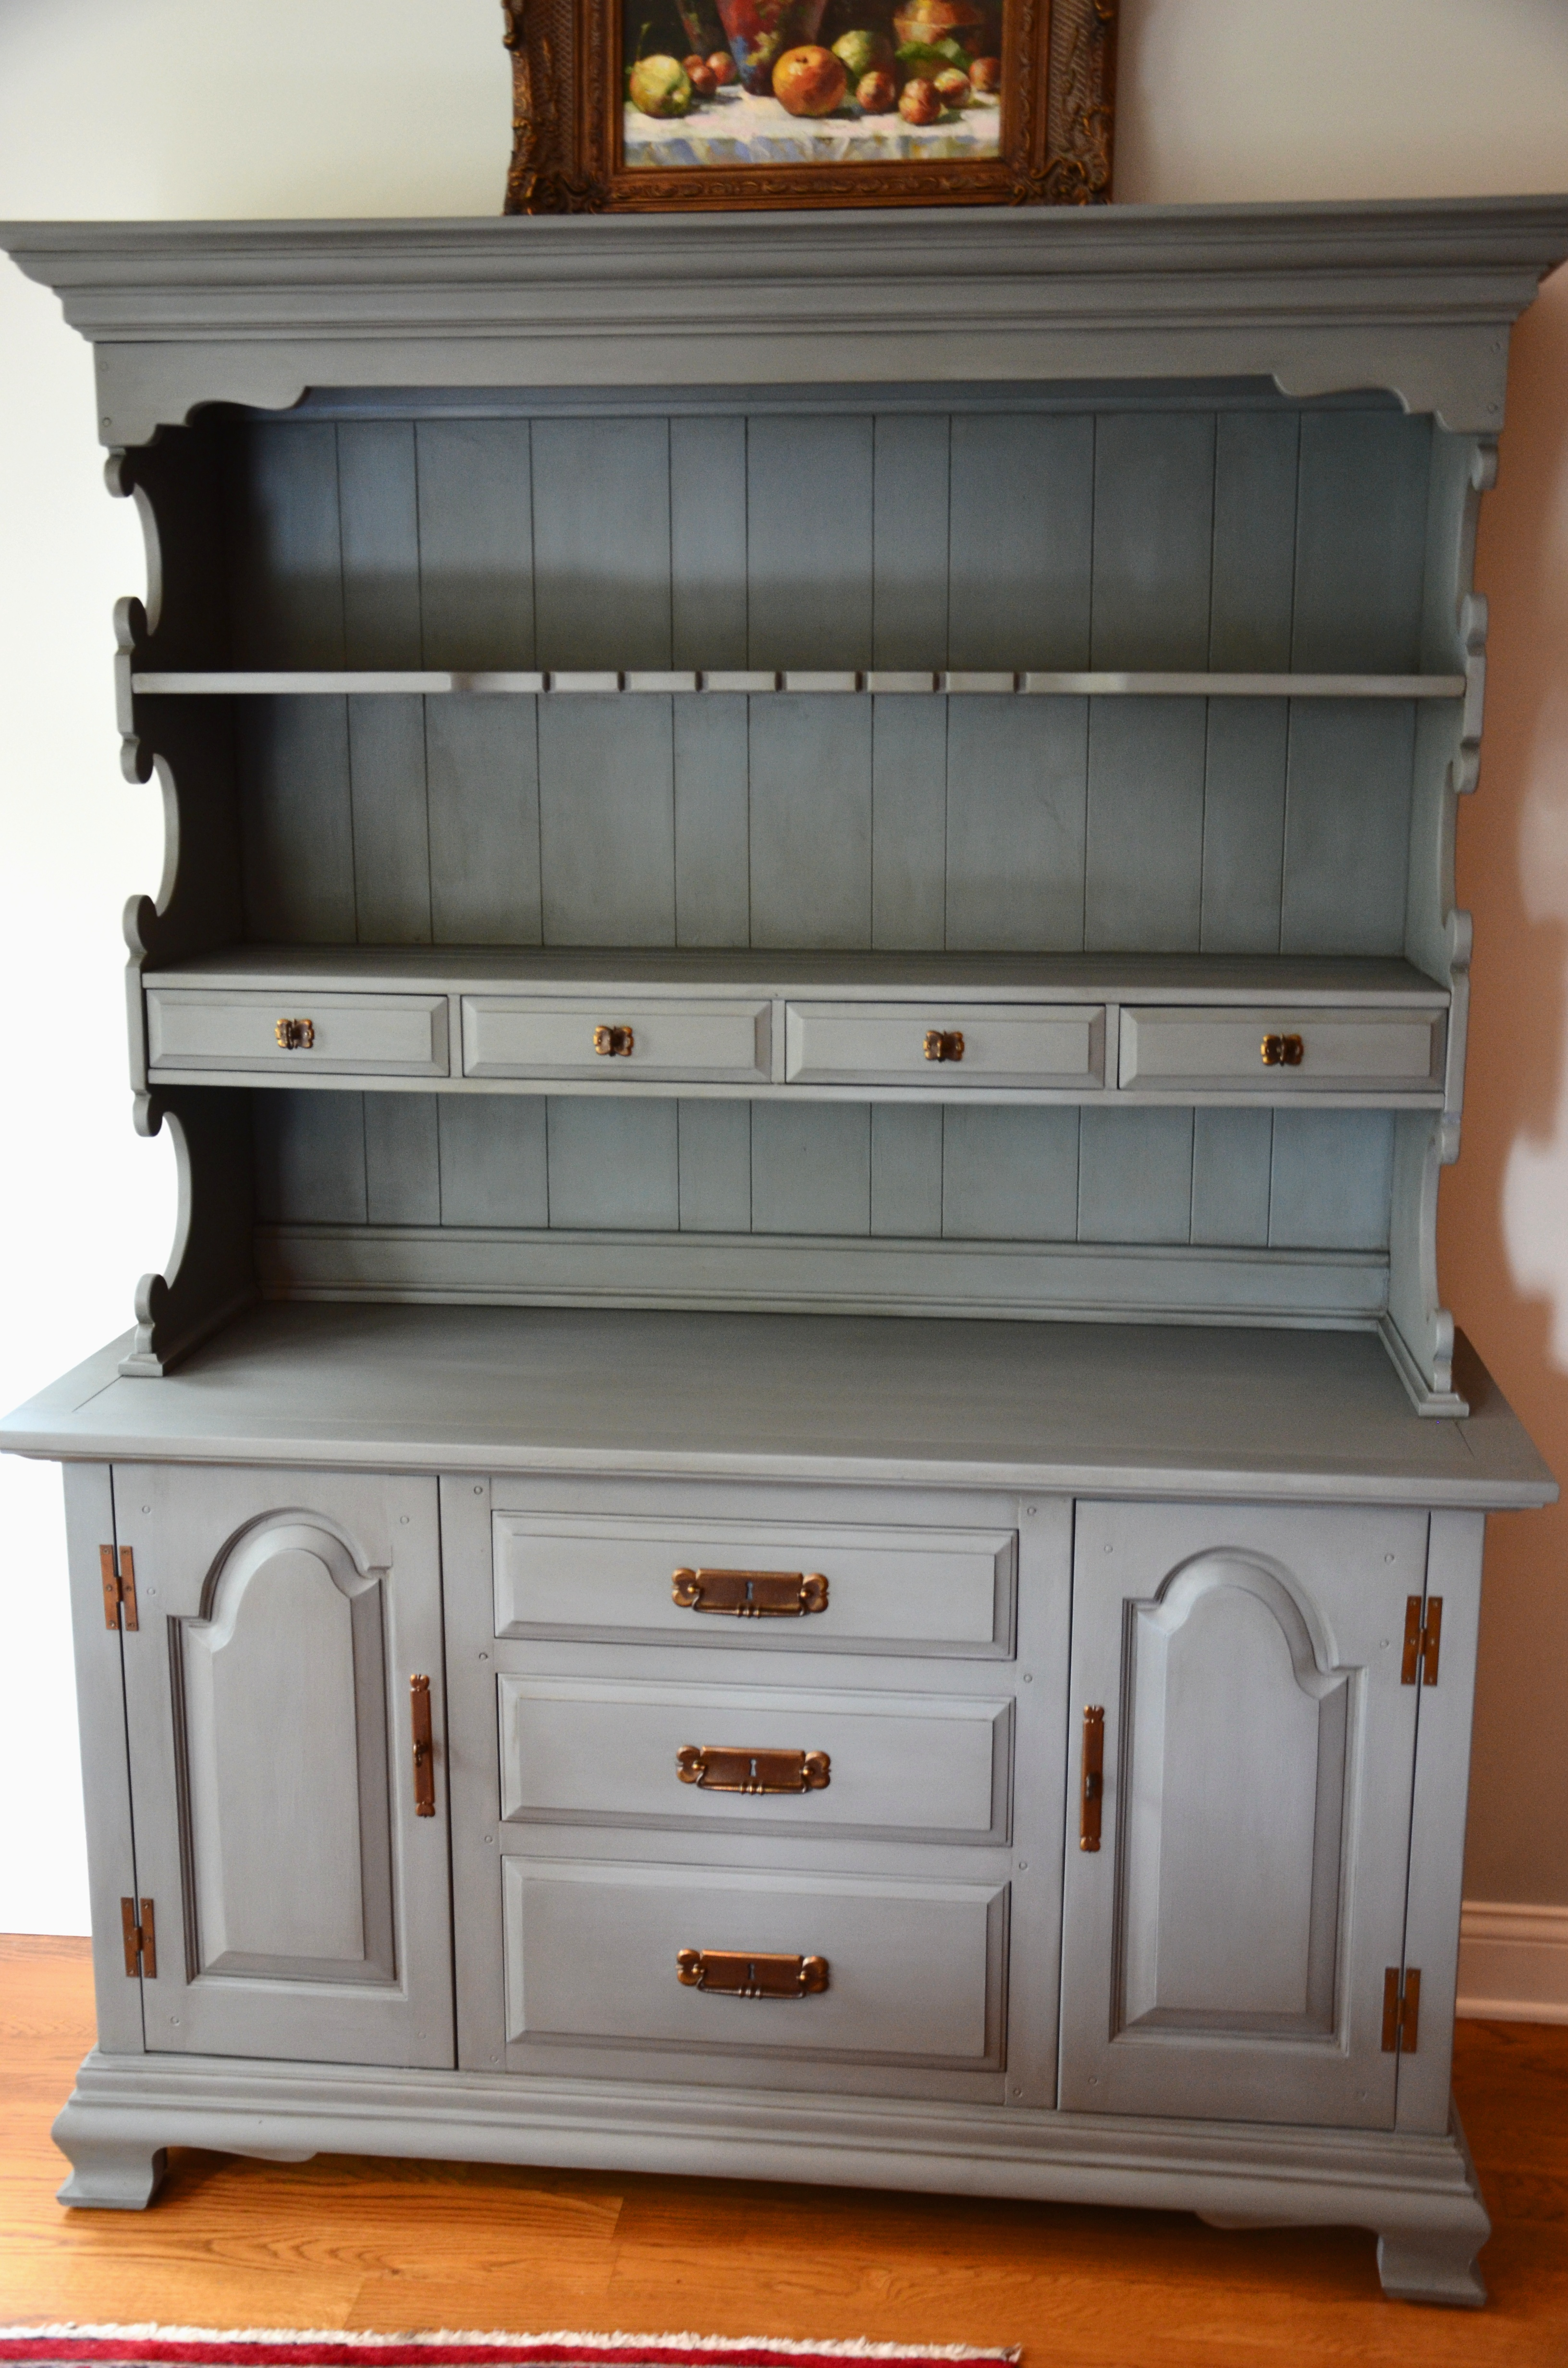 Chest painted in Maison Blanche Magnolia with